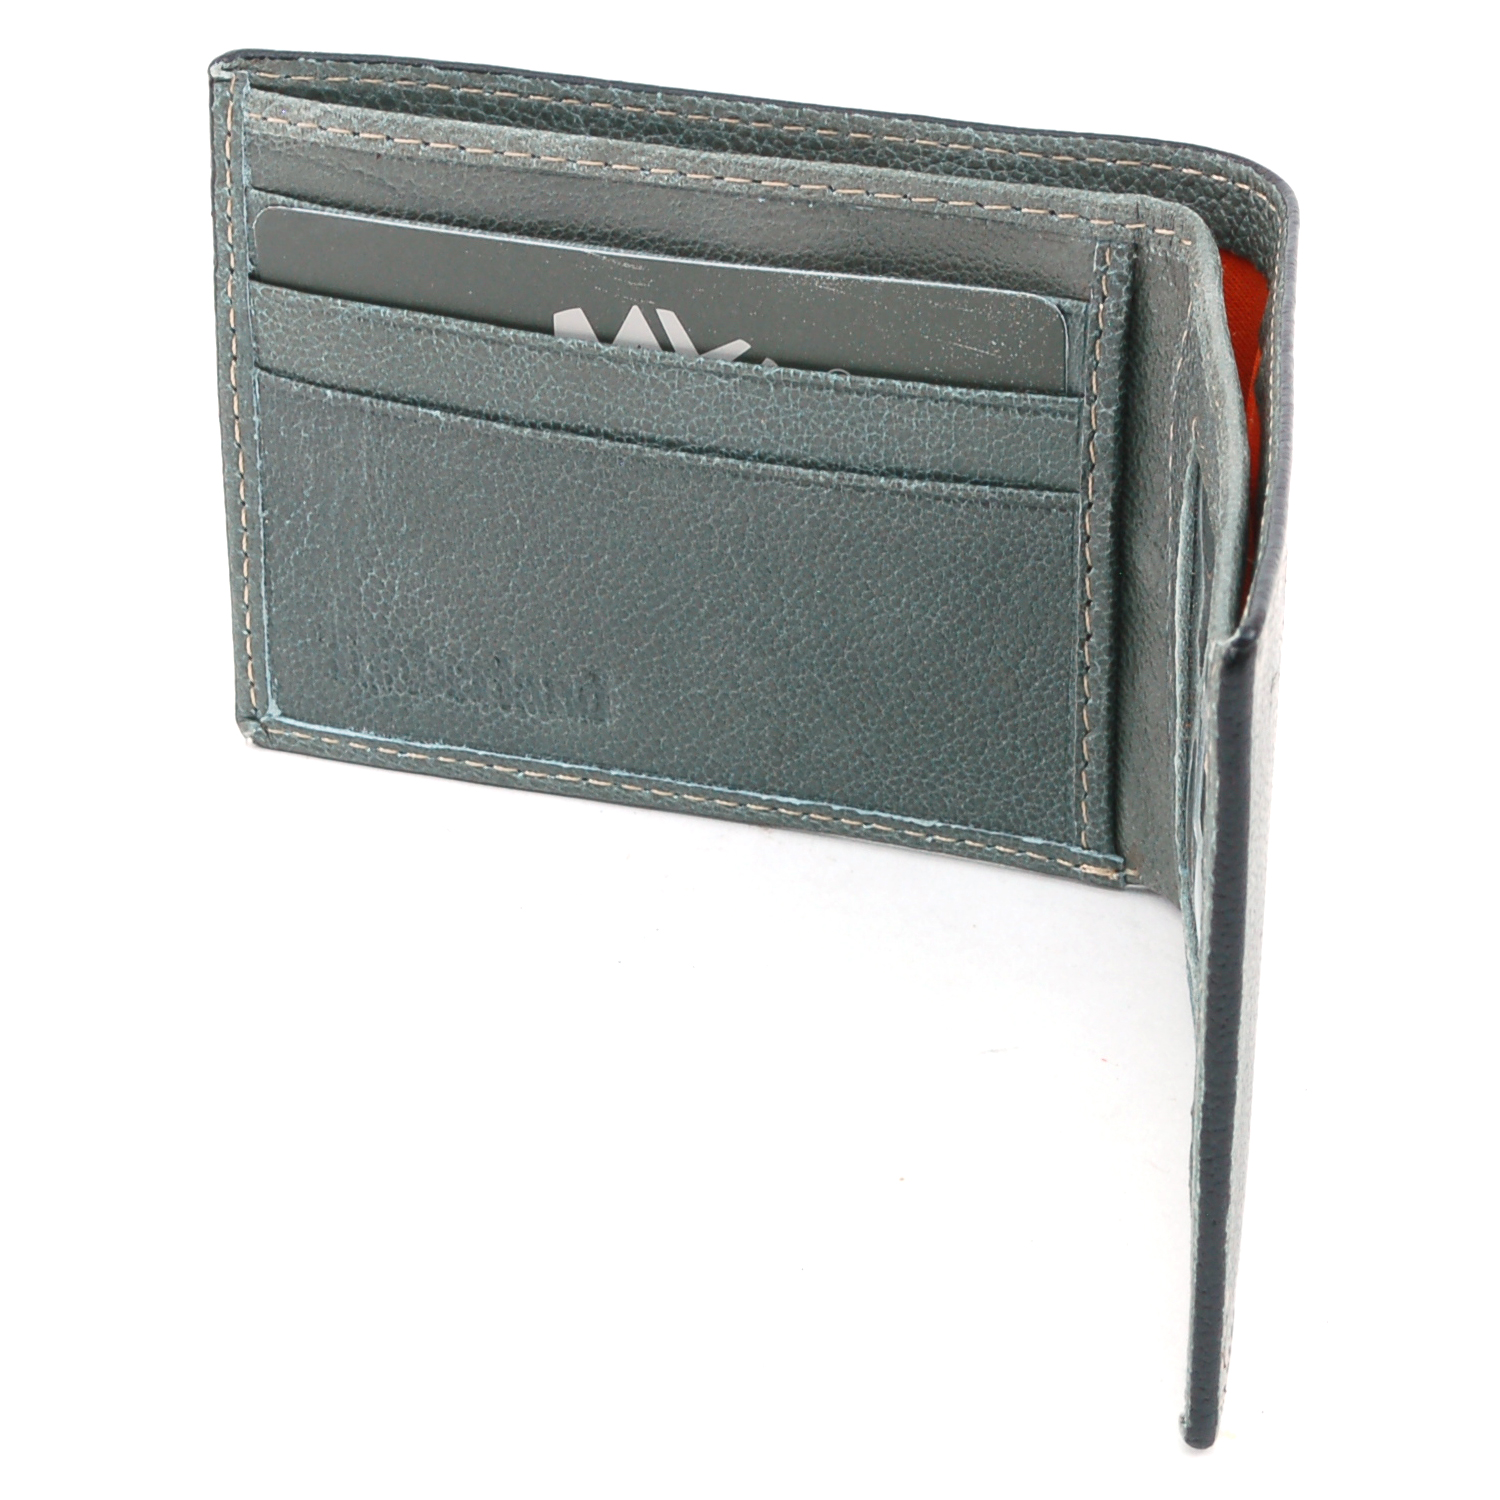 Timberland Thin Slimfold Wallet Genuine Leather Mens ...